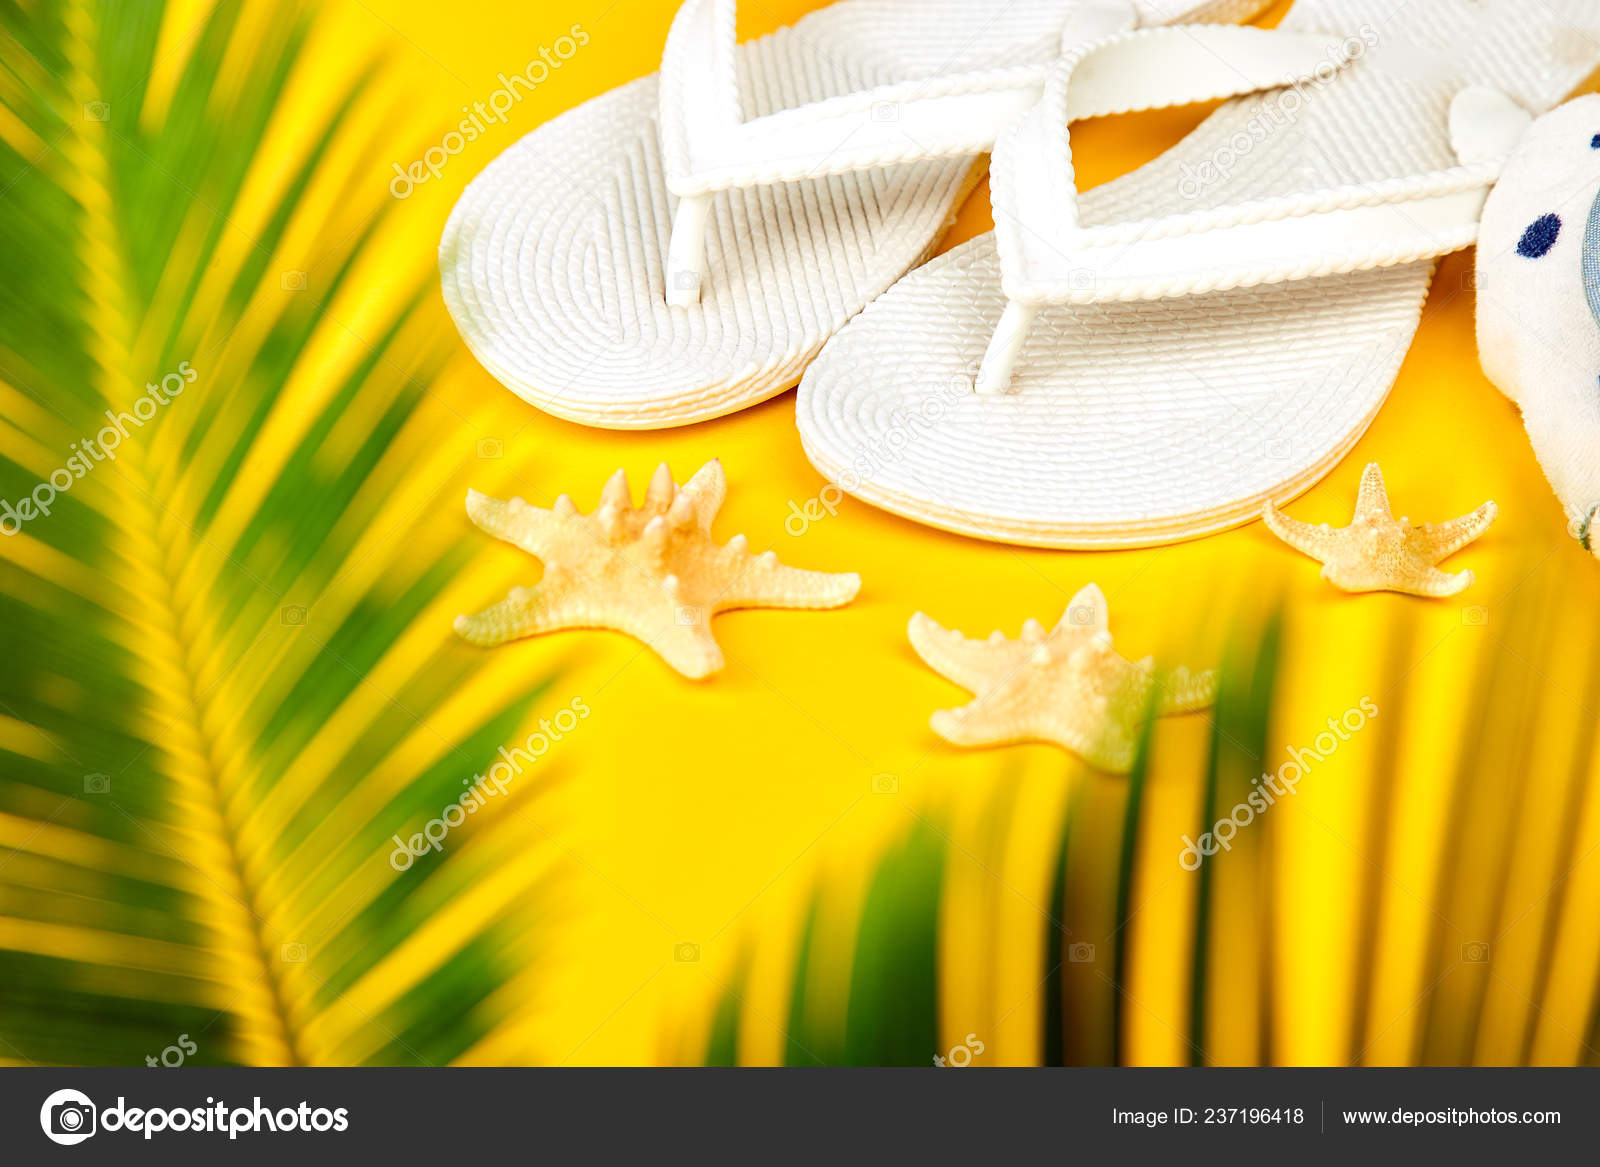 f07d9dc29e54 Summer White Flip Flops Starfish Tropical Palm Branches Yellow ...